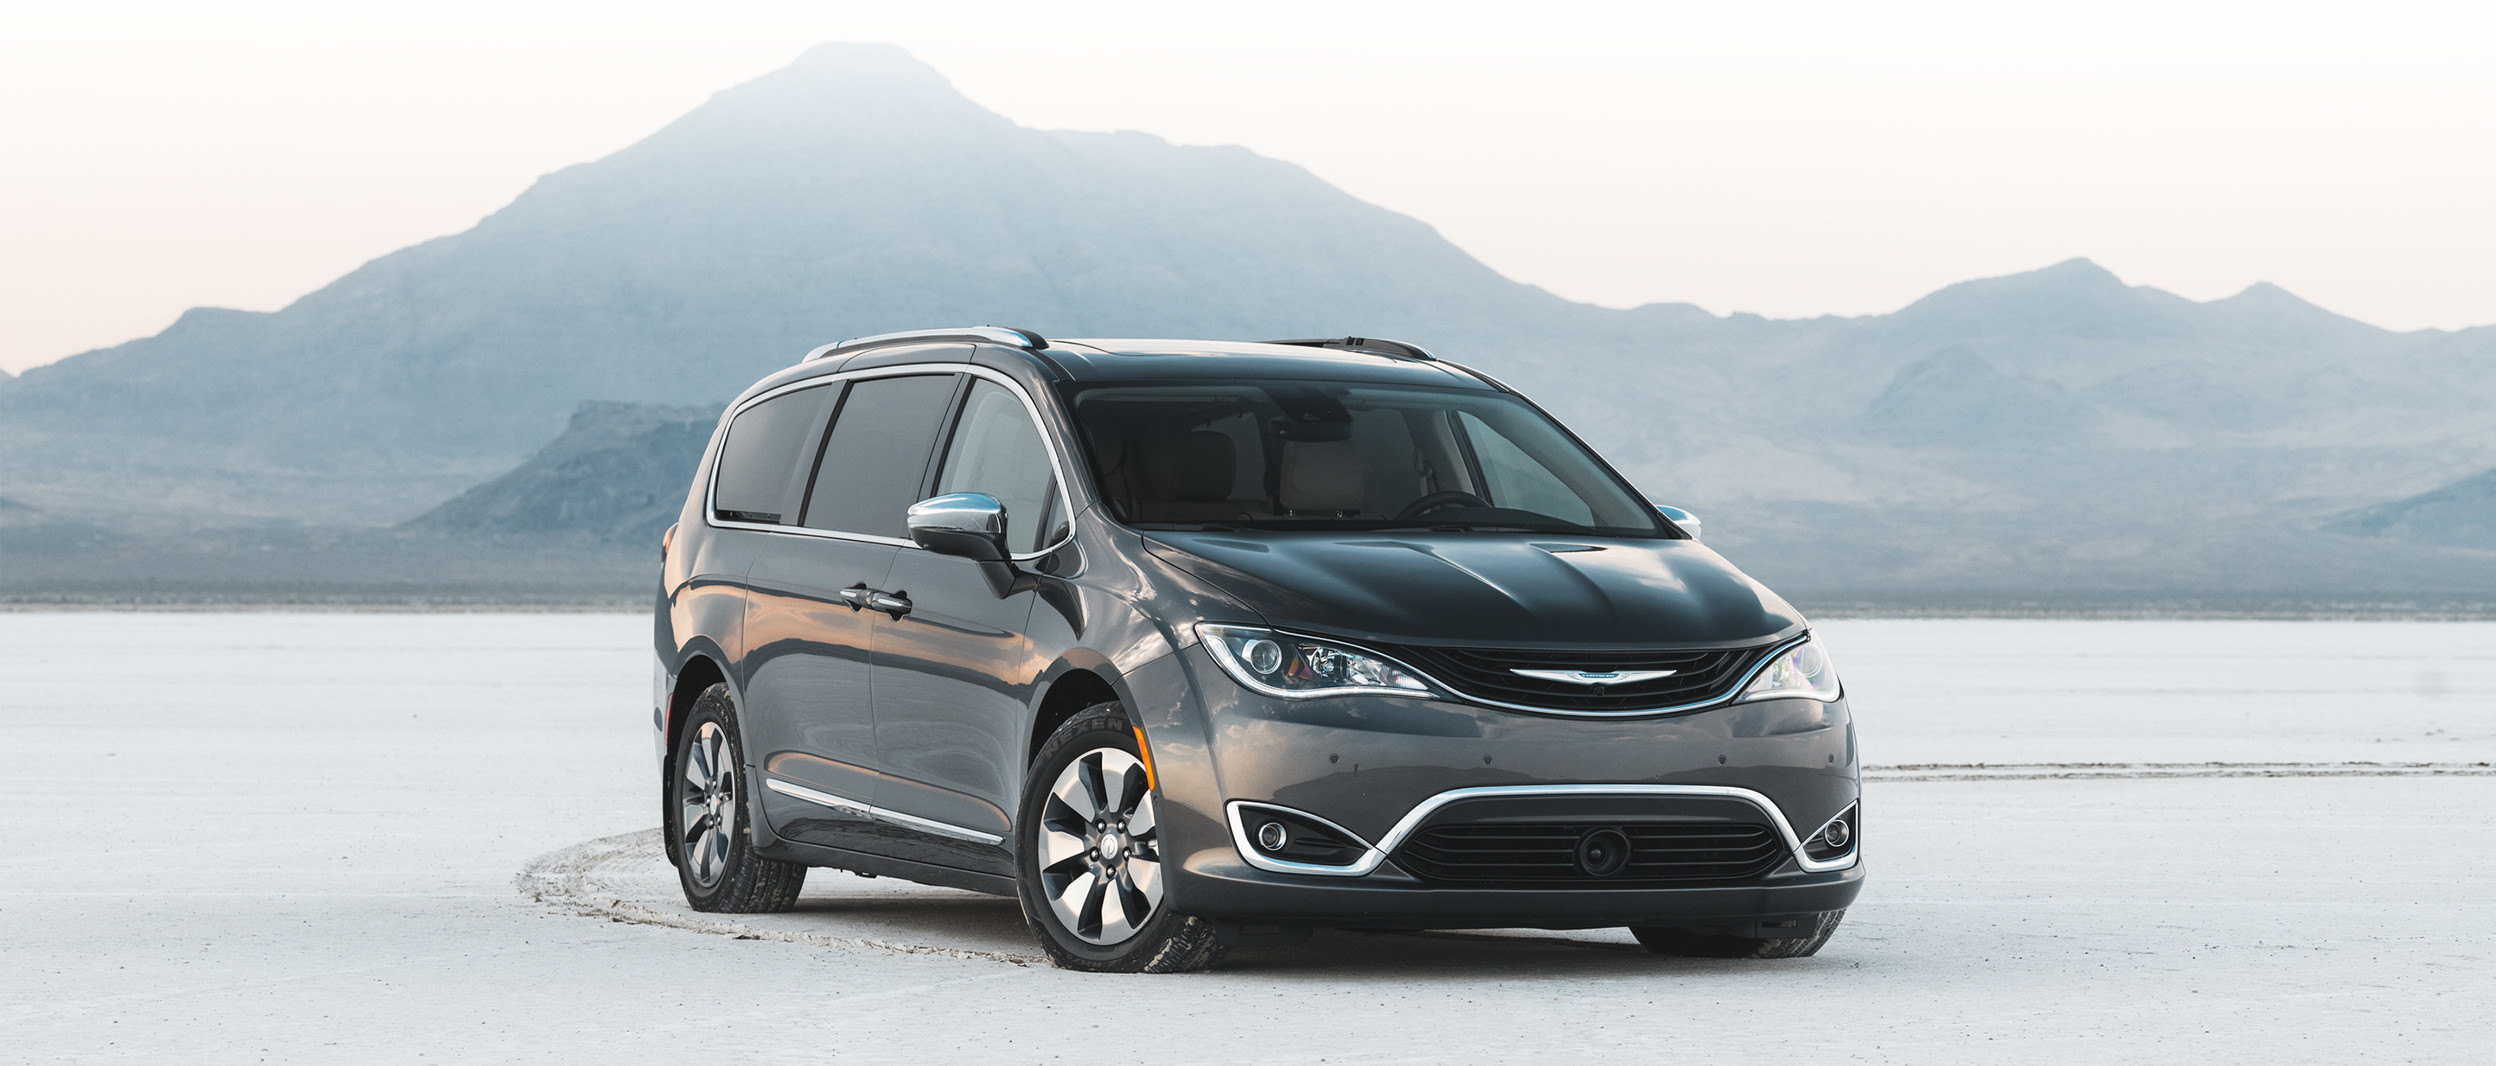 Front view of the grey 2019 Chrysler Pacifica Hybrid parked in a snowy mountain clearing